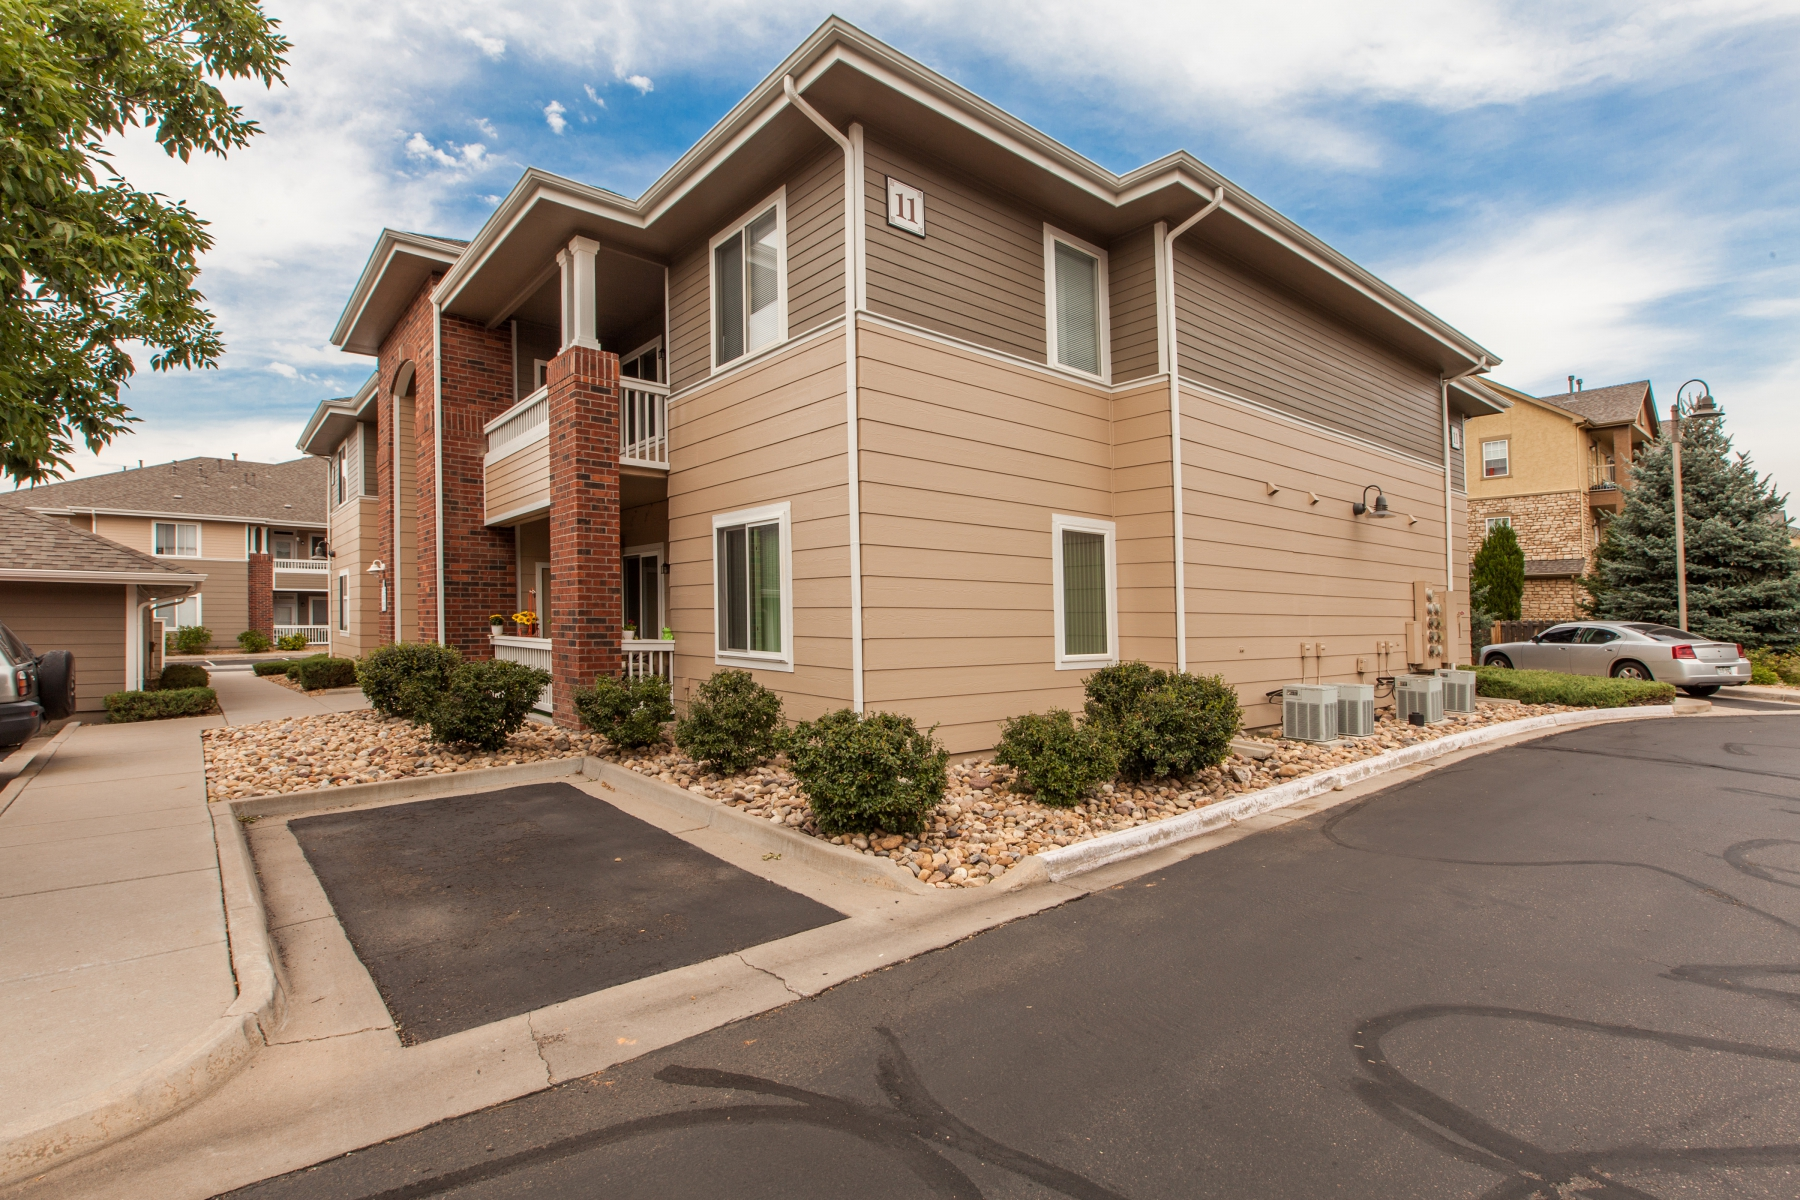 Condominium for Sale at Beautifully Maintained Spacious Condo with 3 Beds, 2 Baths and New Carpet 8481 West Union Avenue 11201 Littleton, Colorado 80123 United States